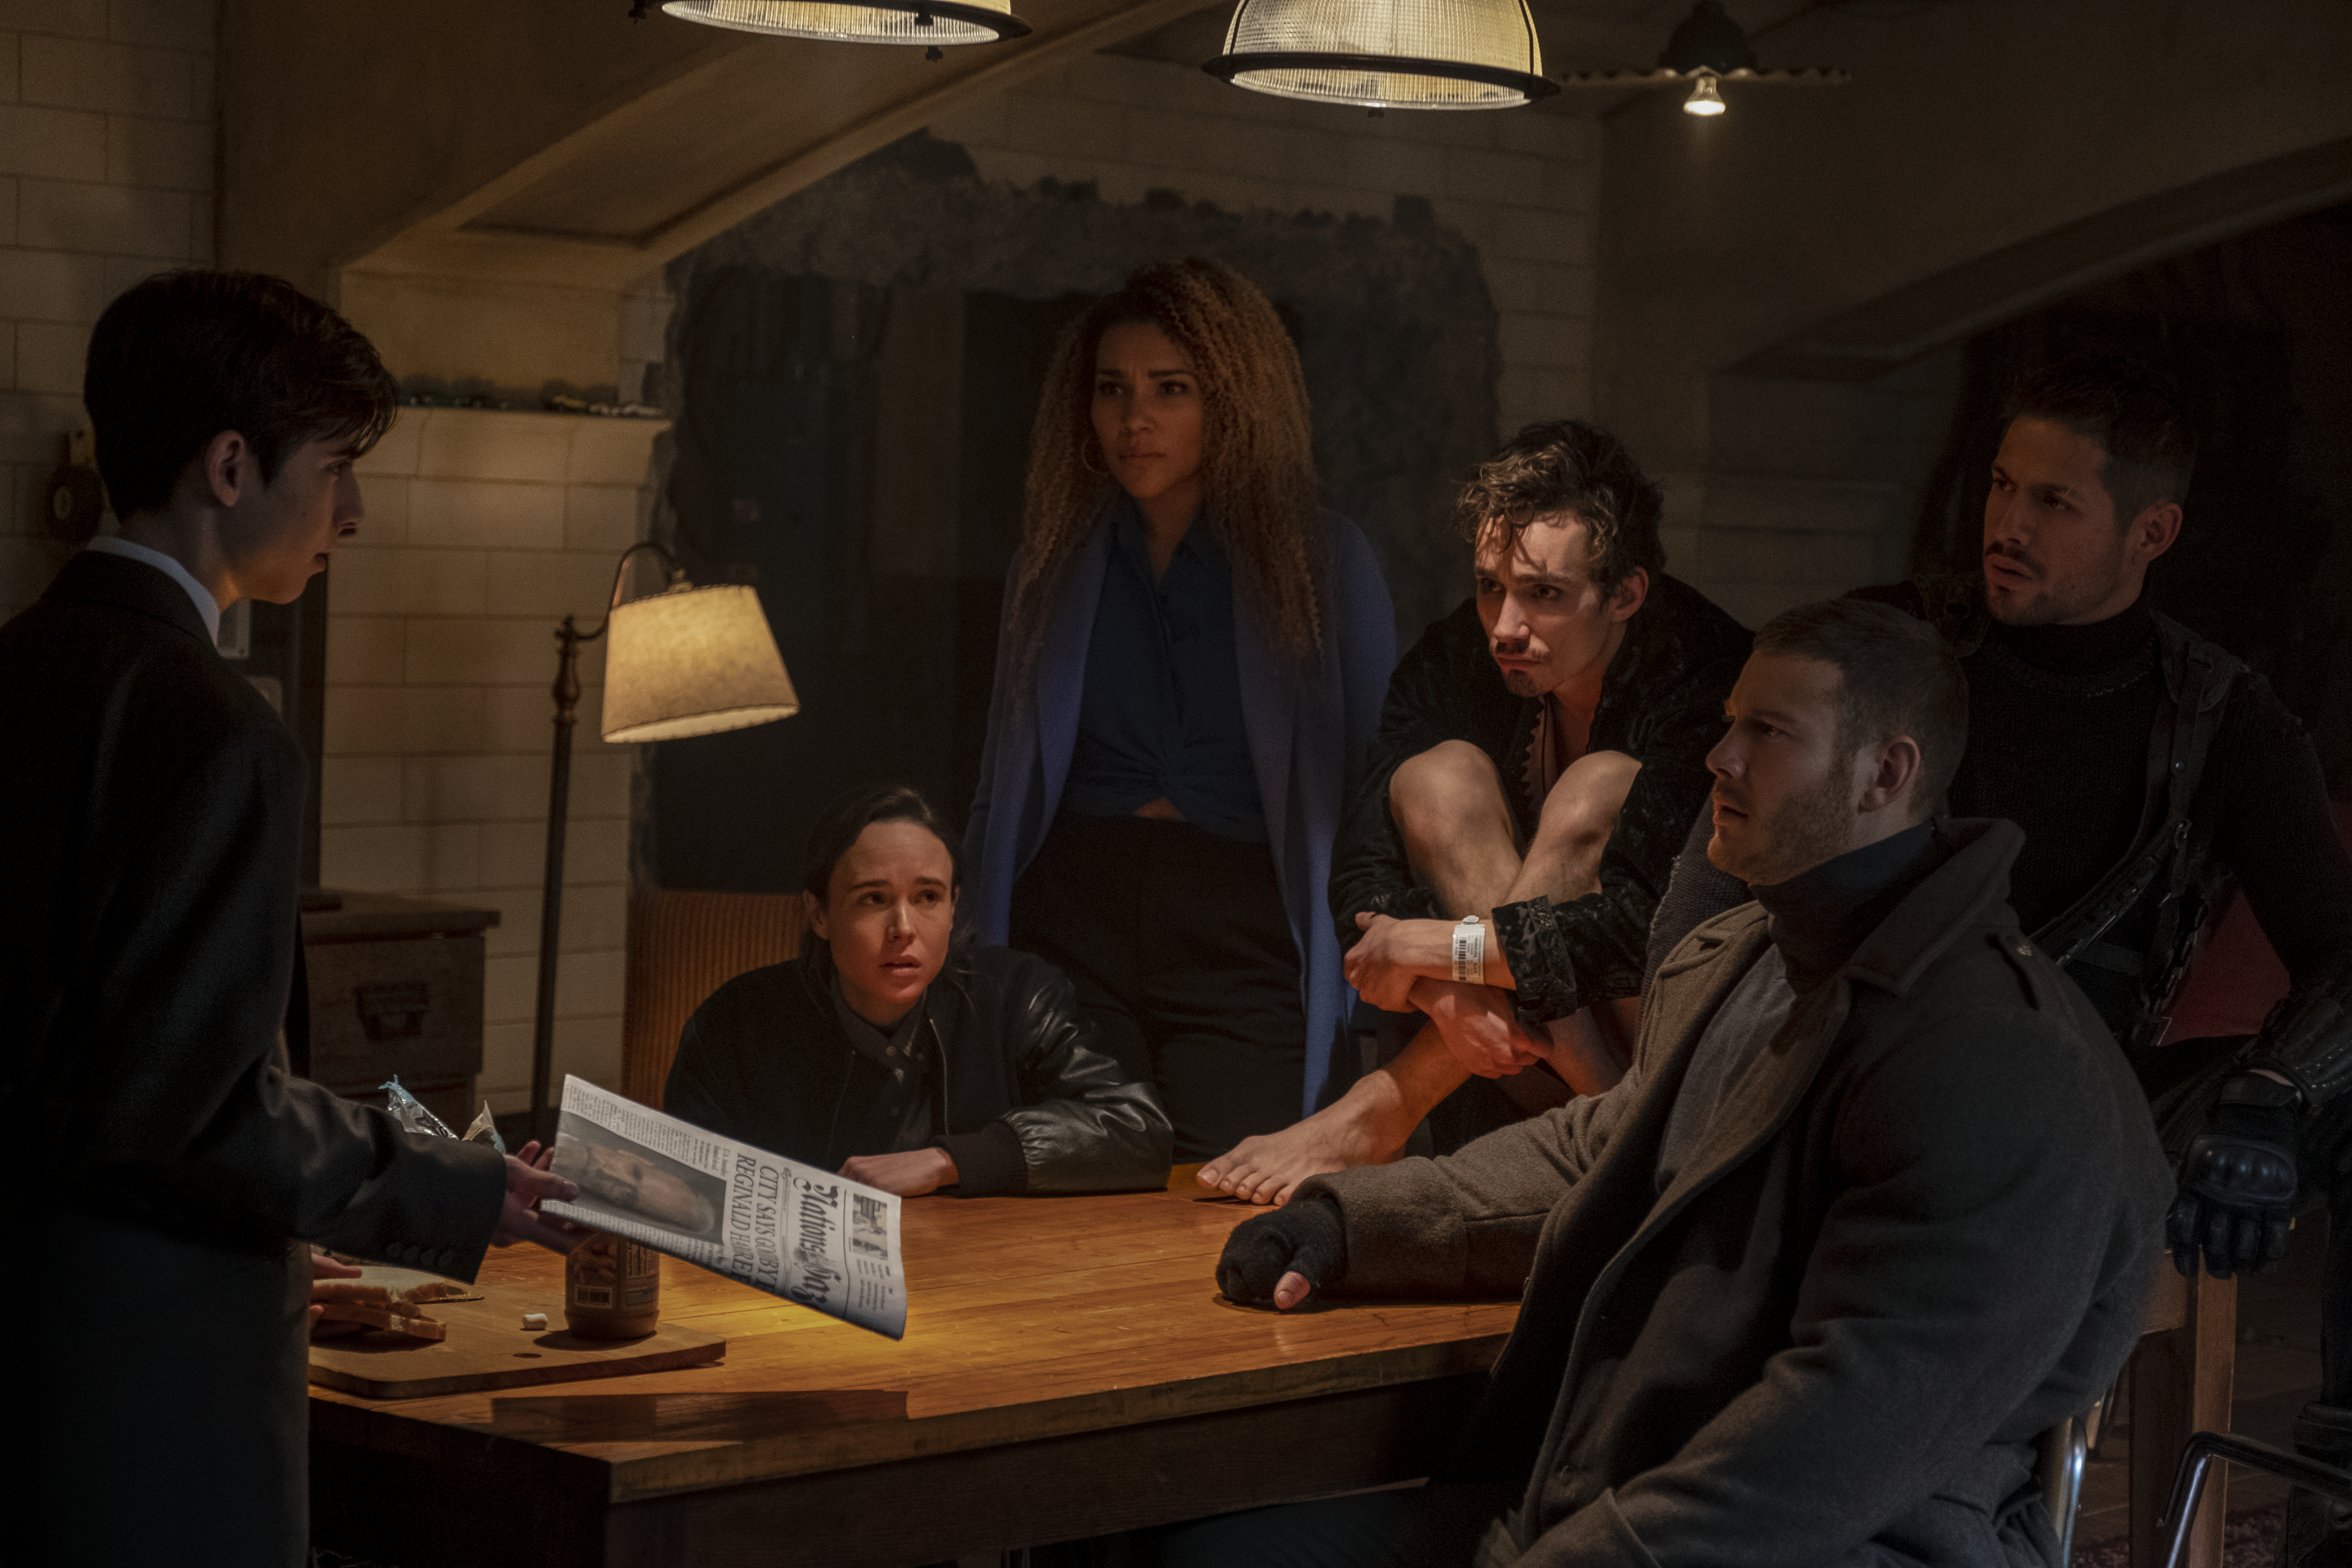 Umbrella Academy' Season 2 Release Date Confirmed? Cast, Trailer